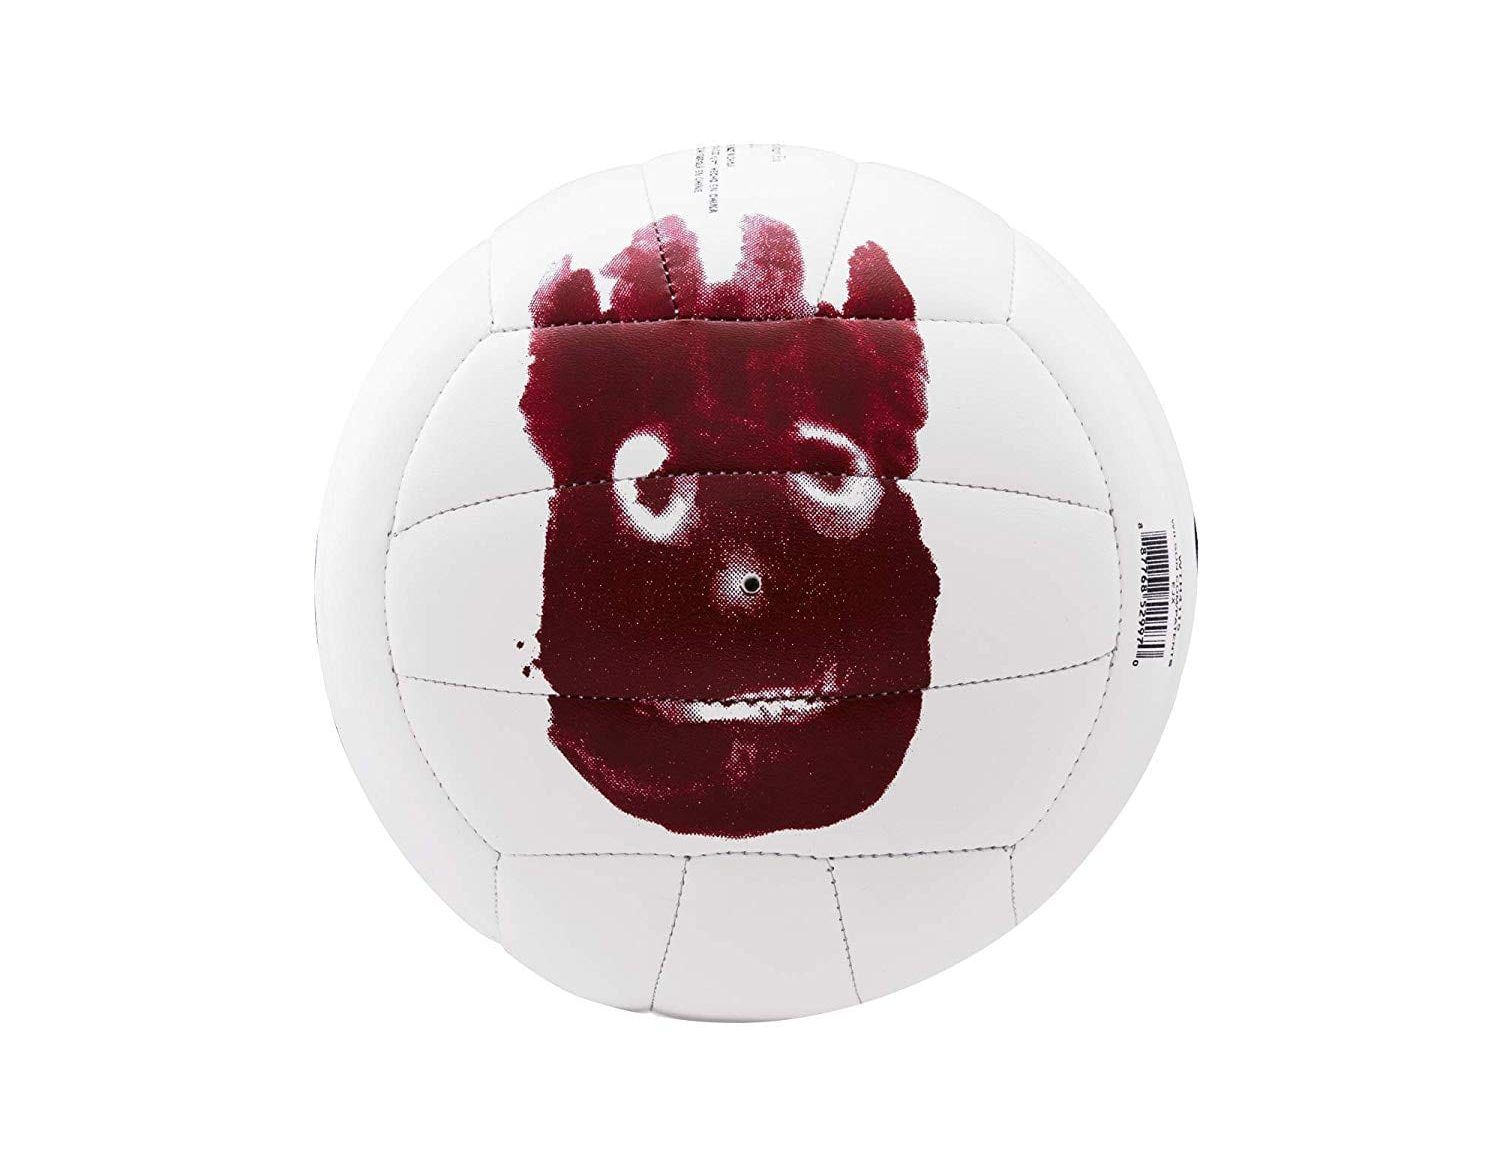 Wilson Castaway Volleyball Down To 10 75 Amazon Uk Https Www Ukdealsandgiveaways Co Uk Wilson Castaway Vo In 2020 Wilson Castaway Free Amazon Products Volleyball